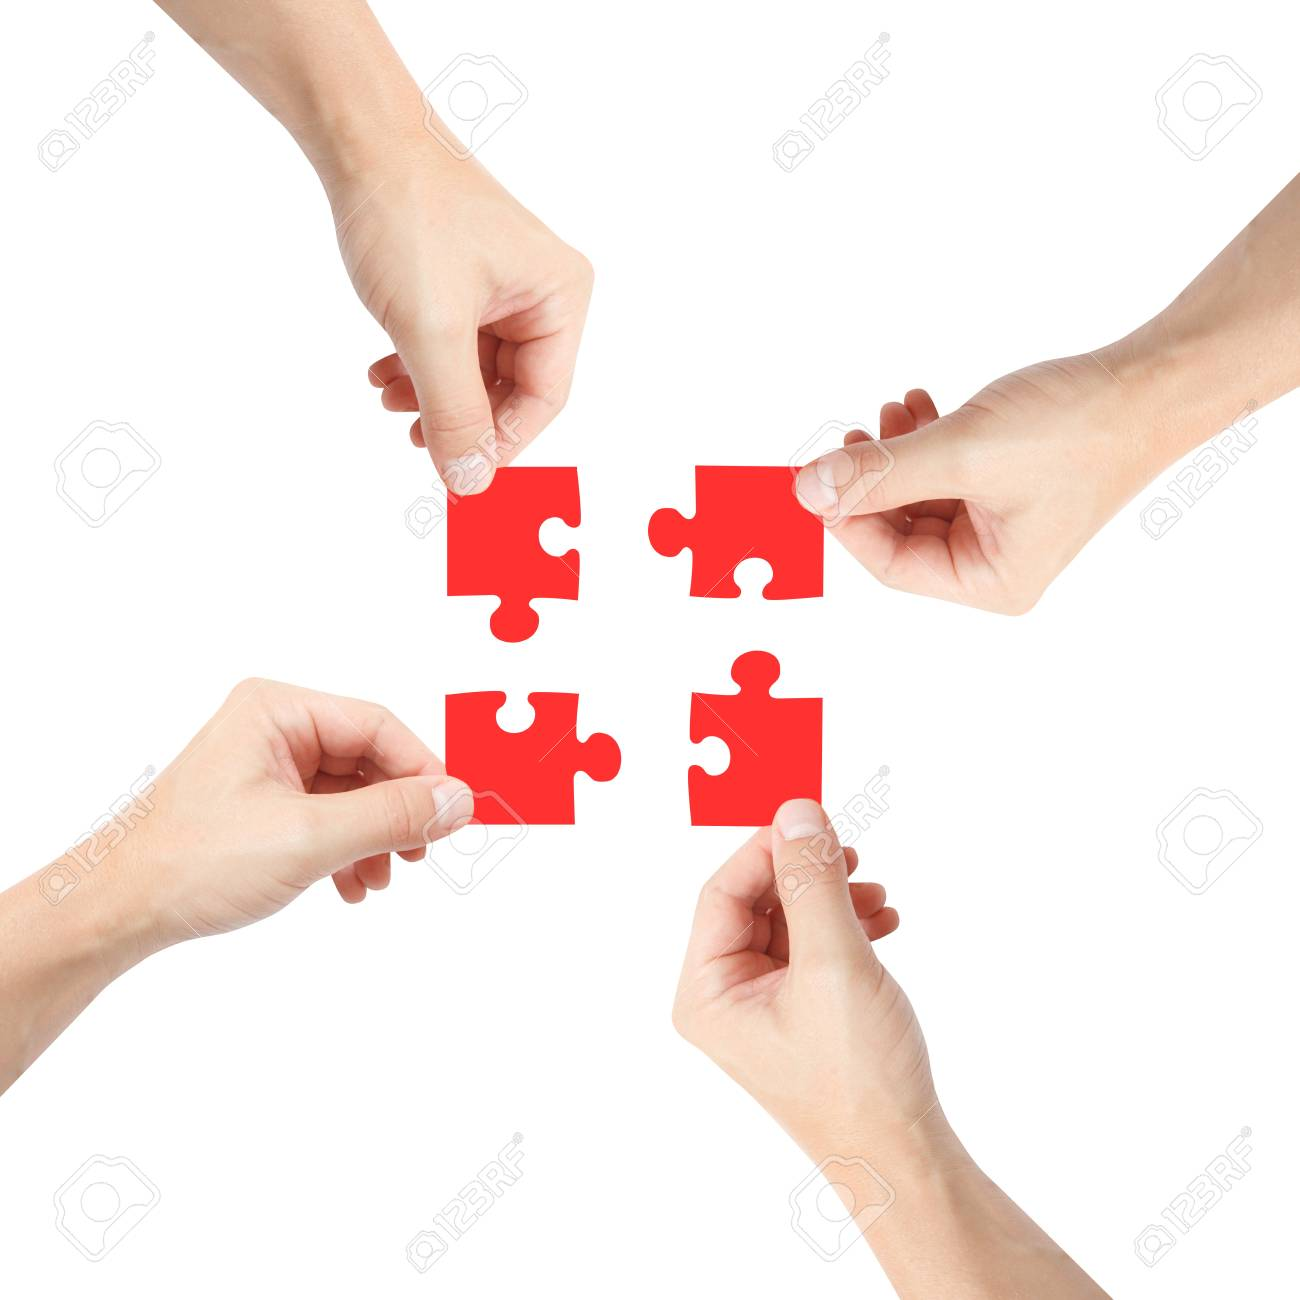 Solving a puzzle with teamwork Stock Photo - 8536259